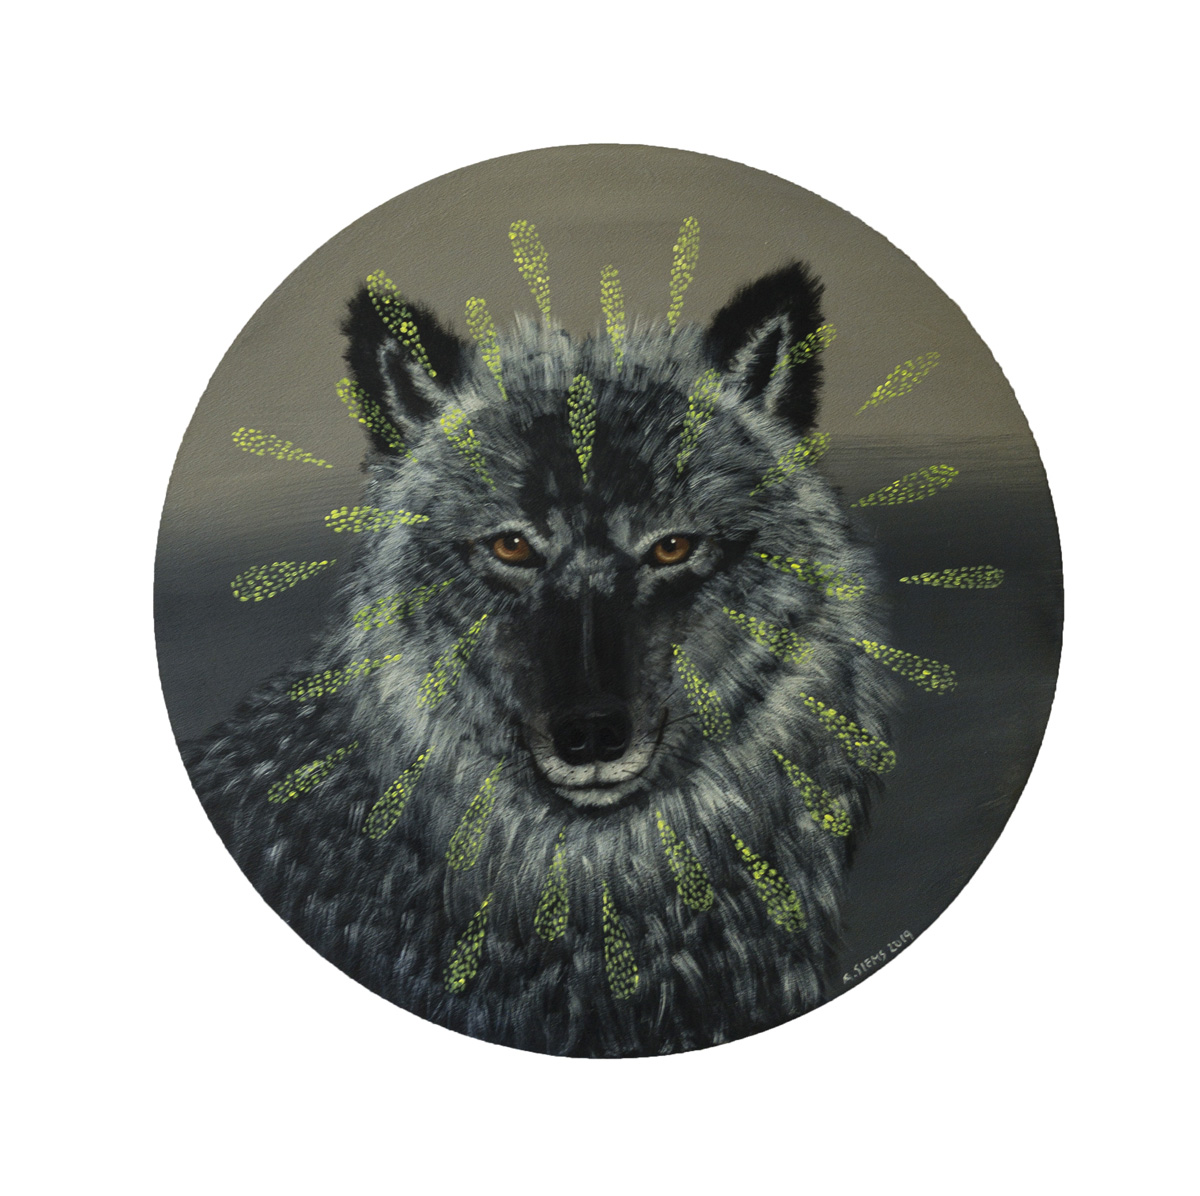 "WISE WOLF, Acrylic on Panel, 18"" diameter"